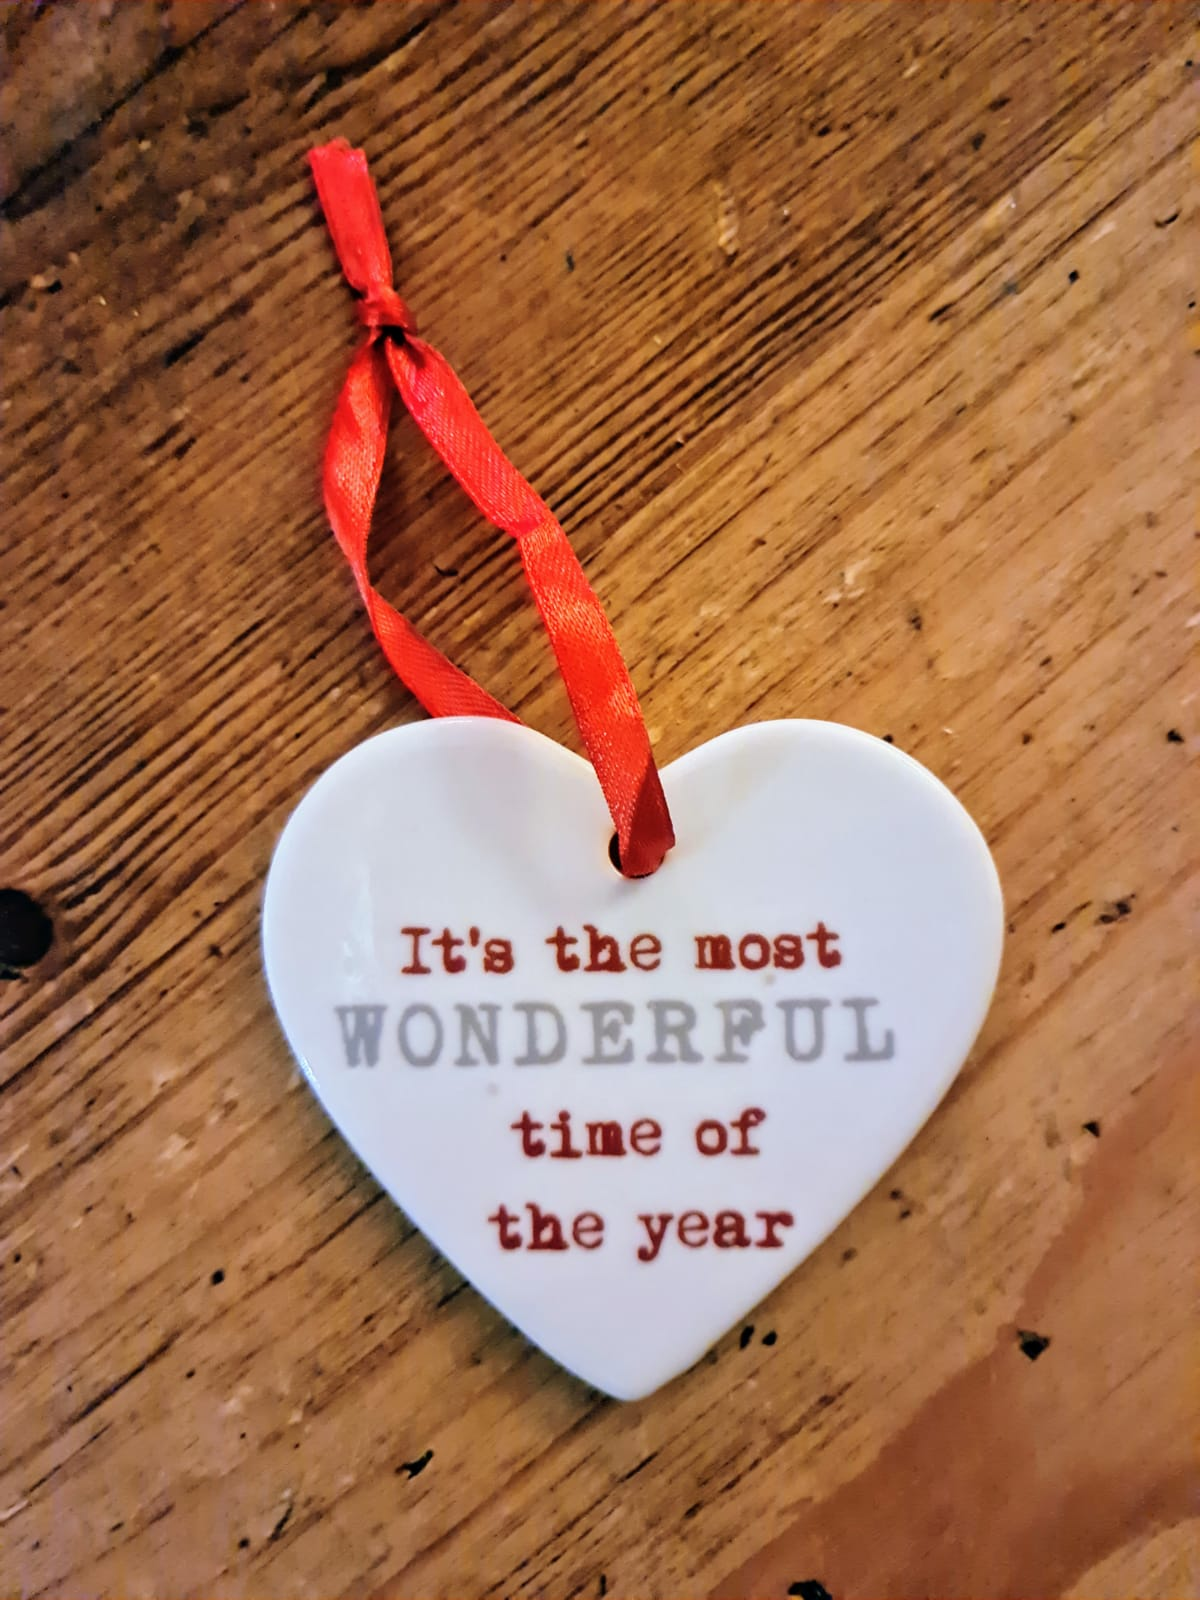 IT'S THE MOST WONDERFUL TIME OF THE YEAR CERAMIC CHRISTMAS HEART